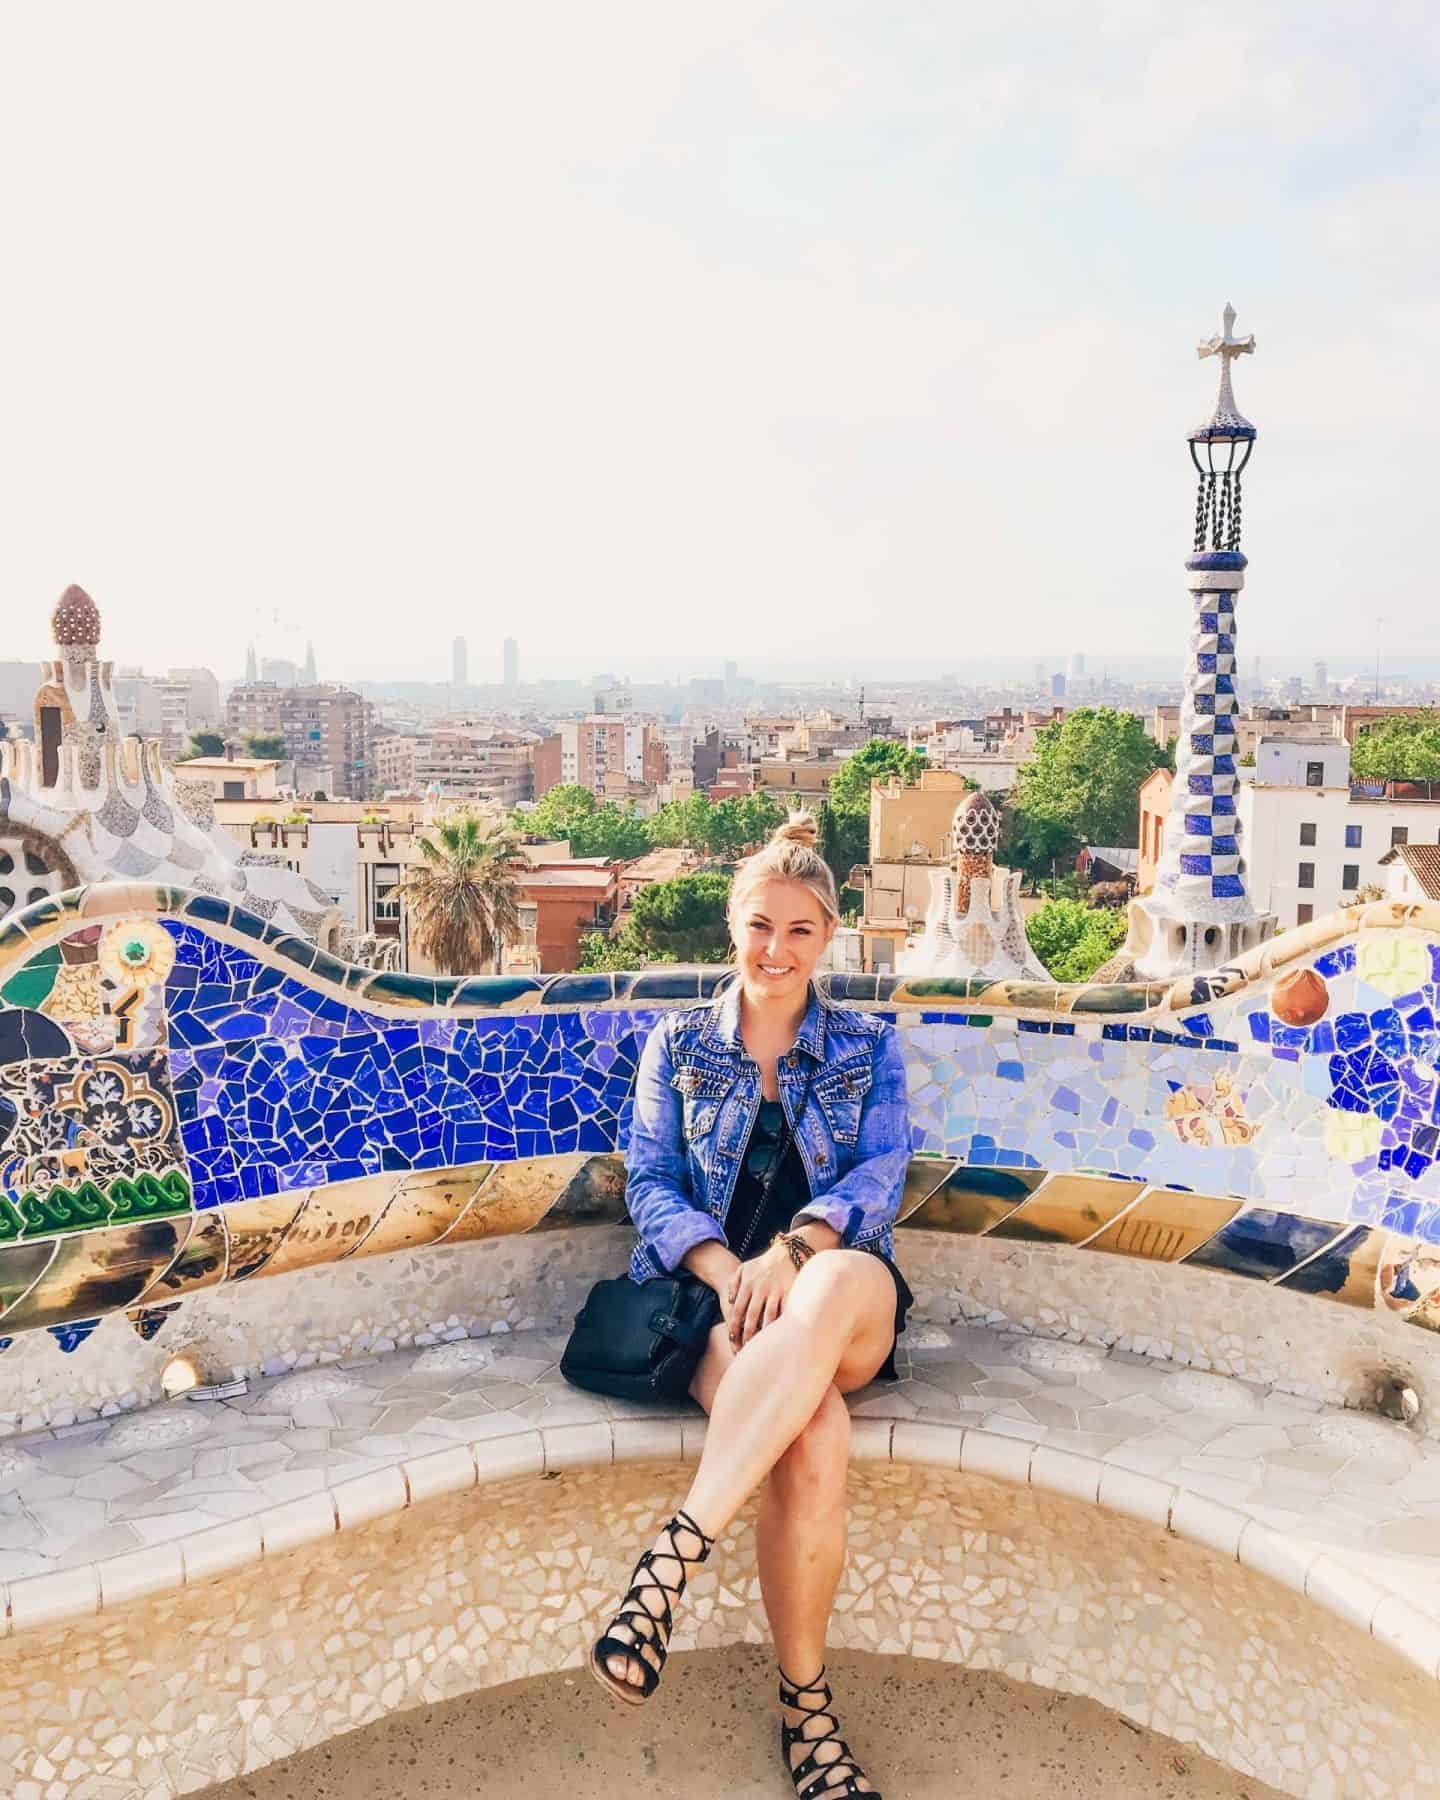 colorful view of barcelona from the longest bench in the world at parc guell